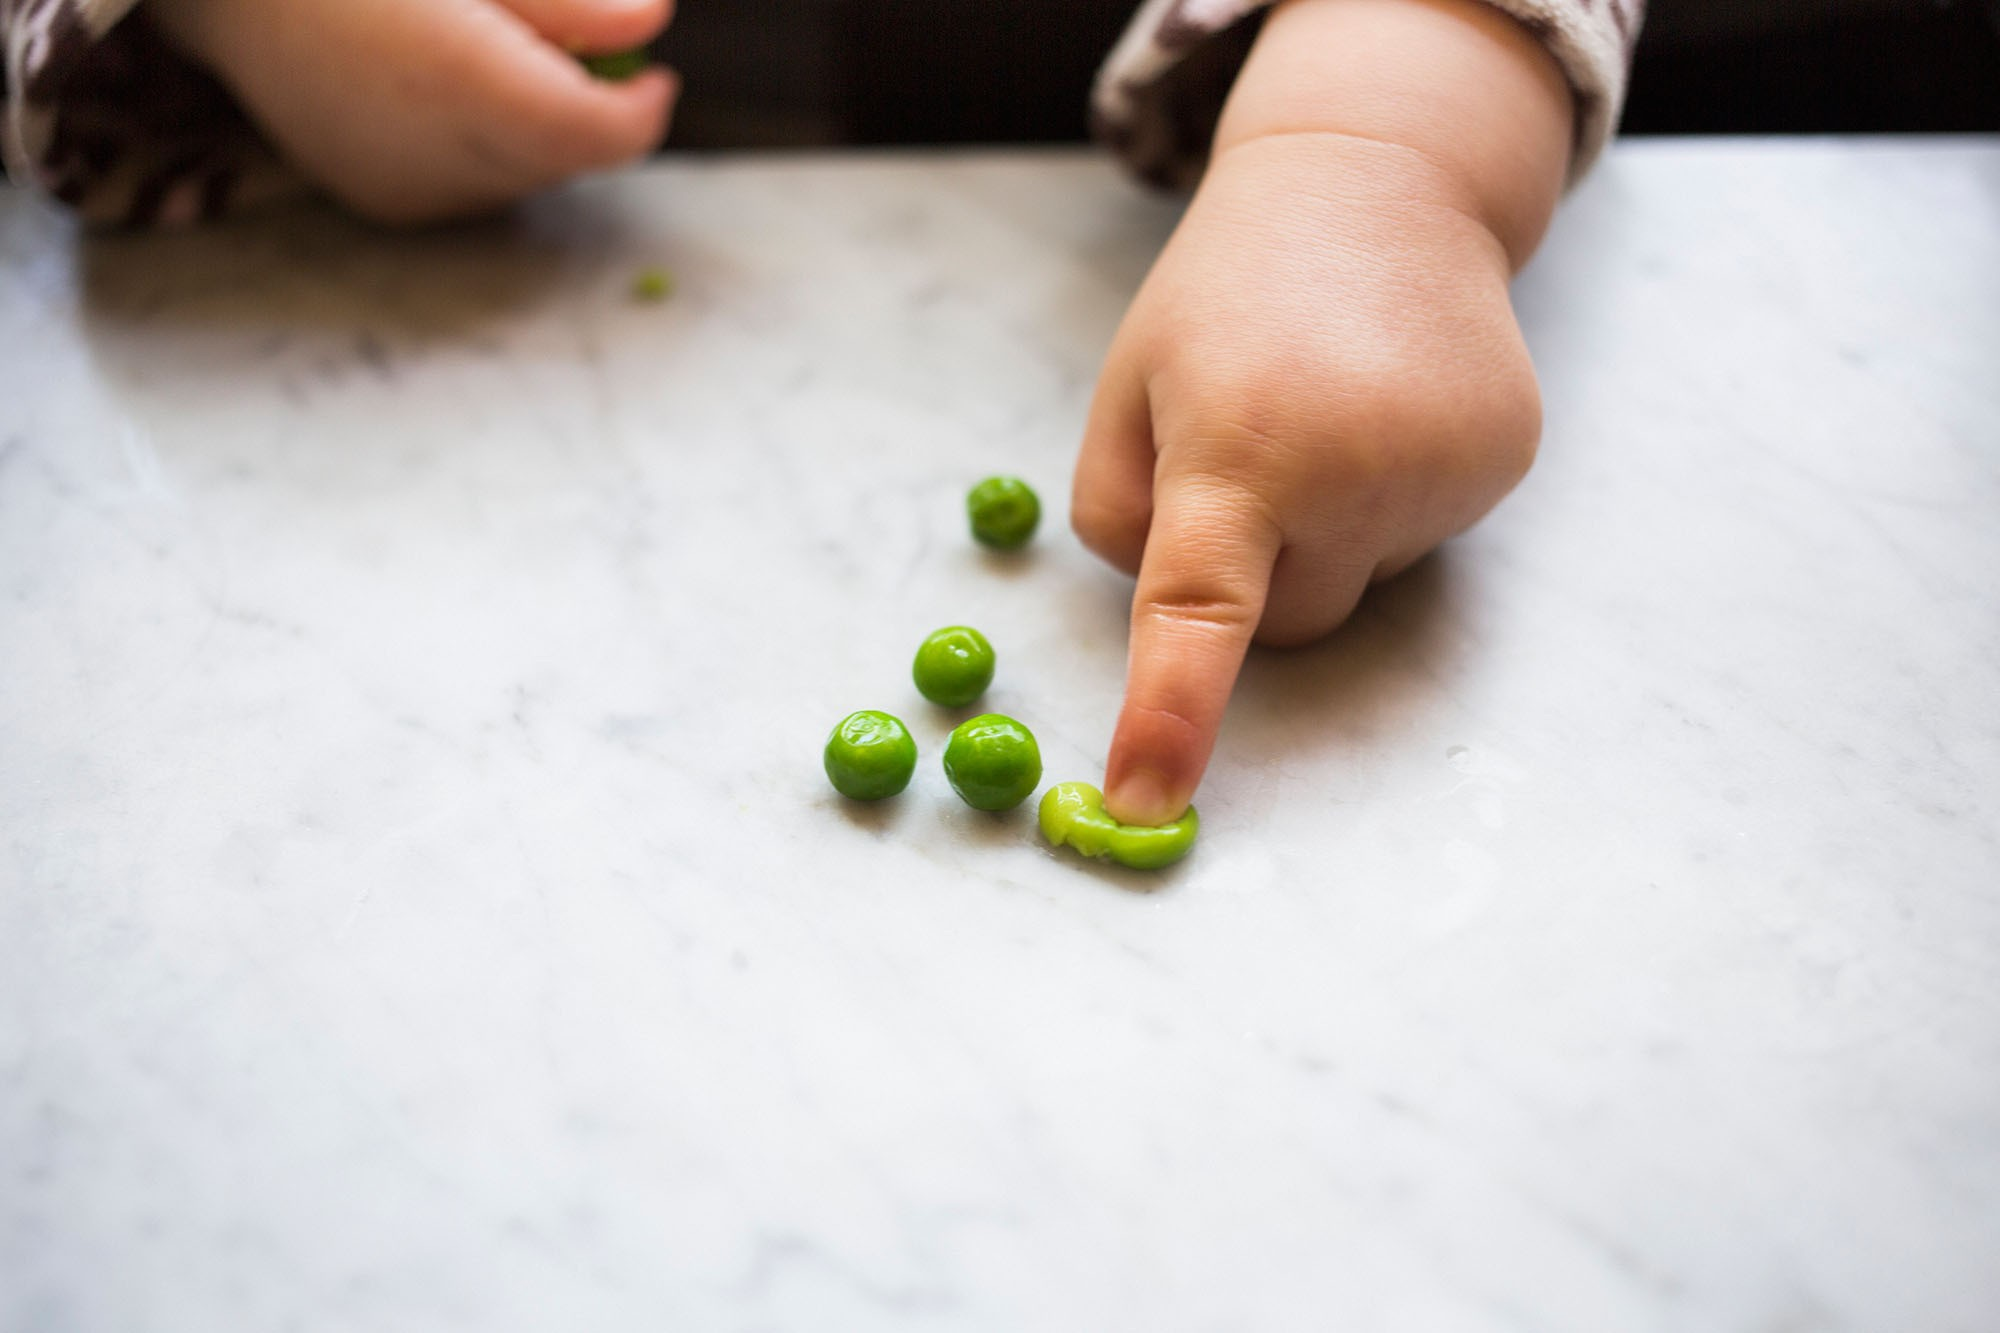 Could Your Child's Picky Eating Be A Sign Of Depression?